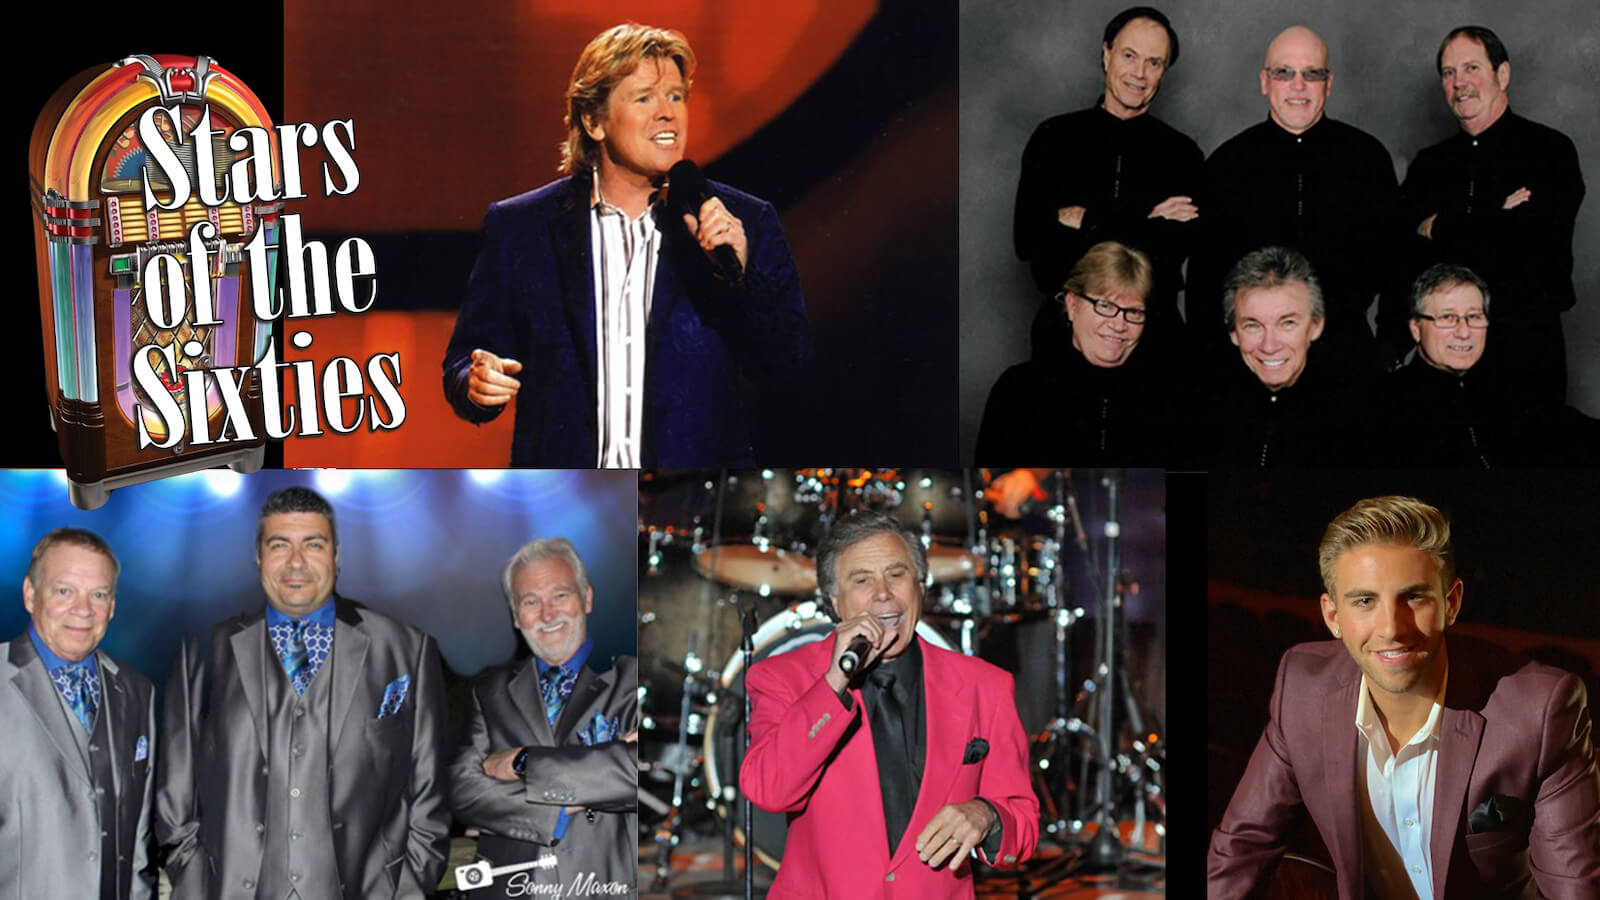 2021-10-21 Overture Stars of the Sixties concert (Herman's Hermits starring Peter Noone, The Classics IV, The Vogues, Bobby Miranda & Chris Ruggiero)